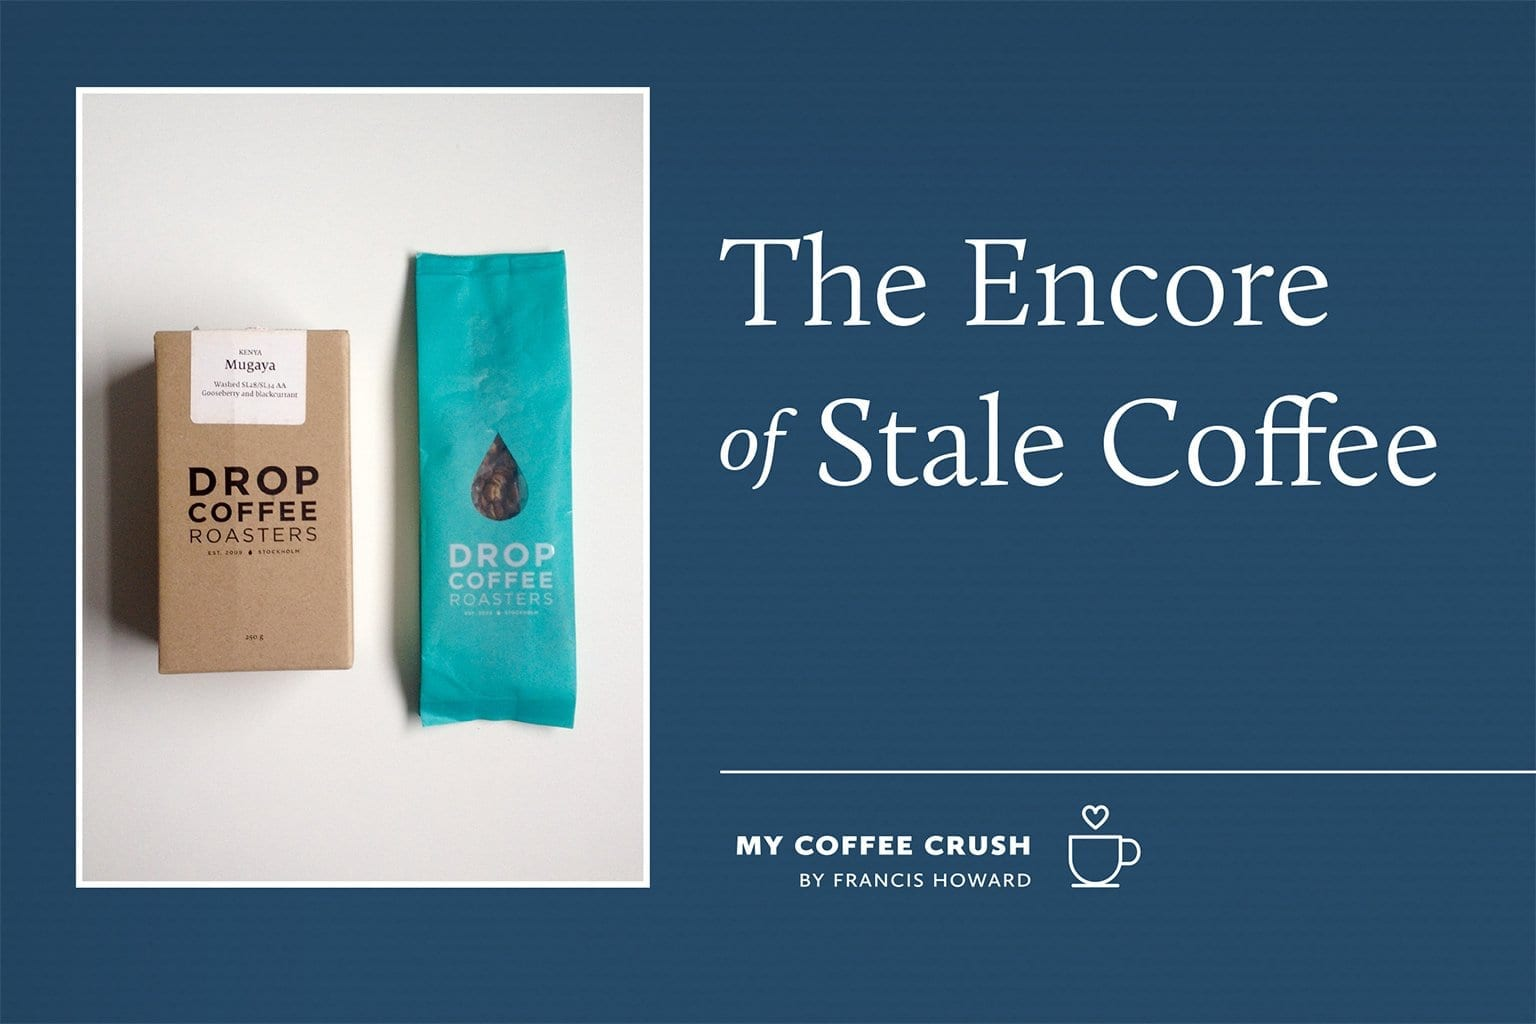 Can Stale Coffee be Good?